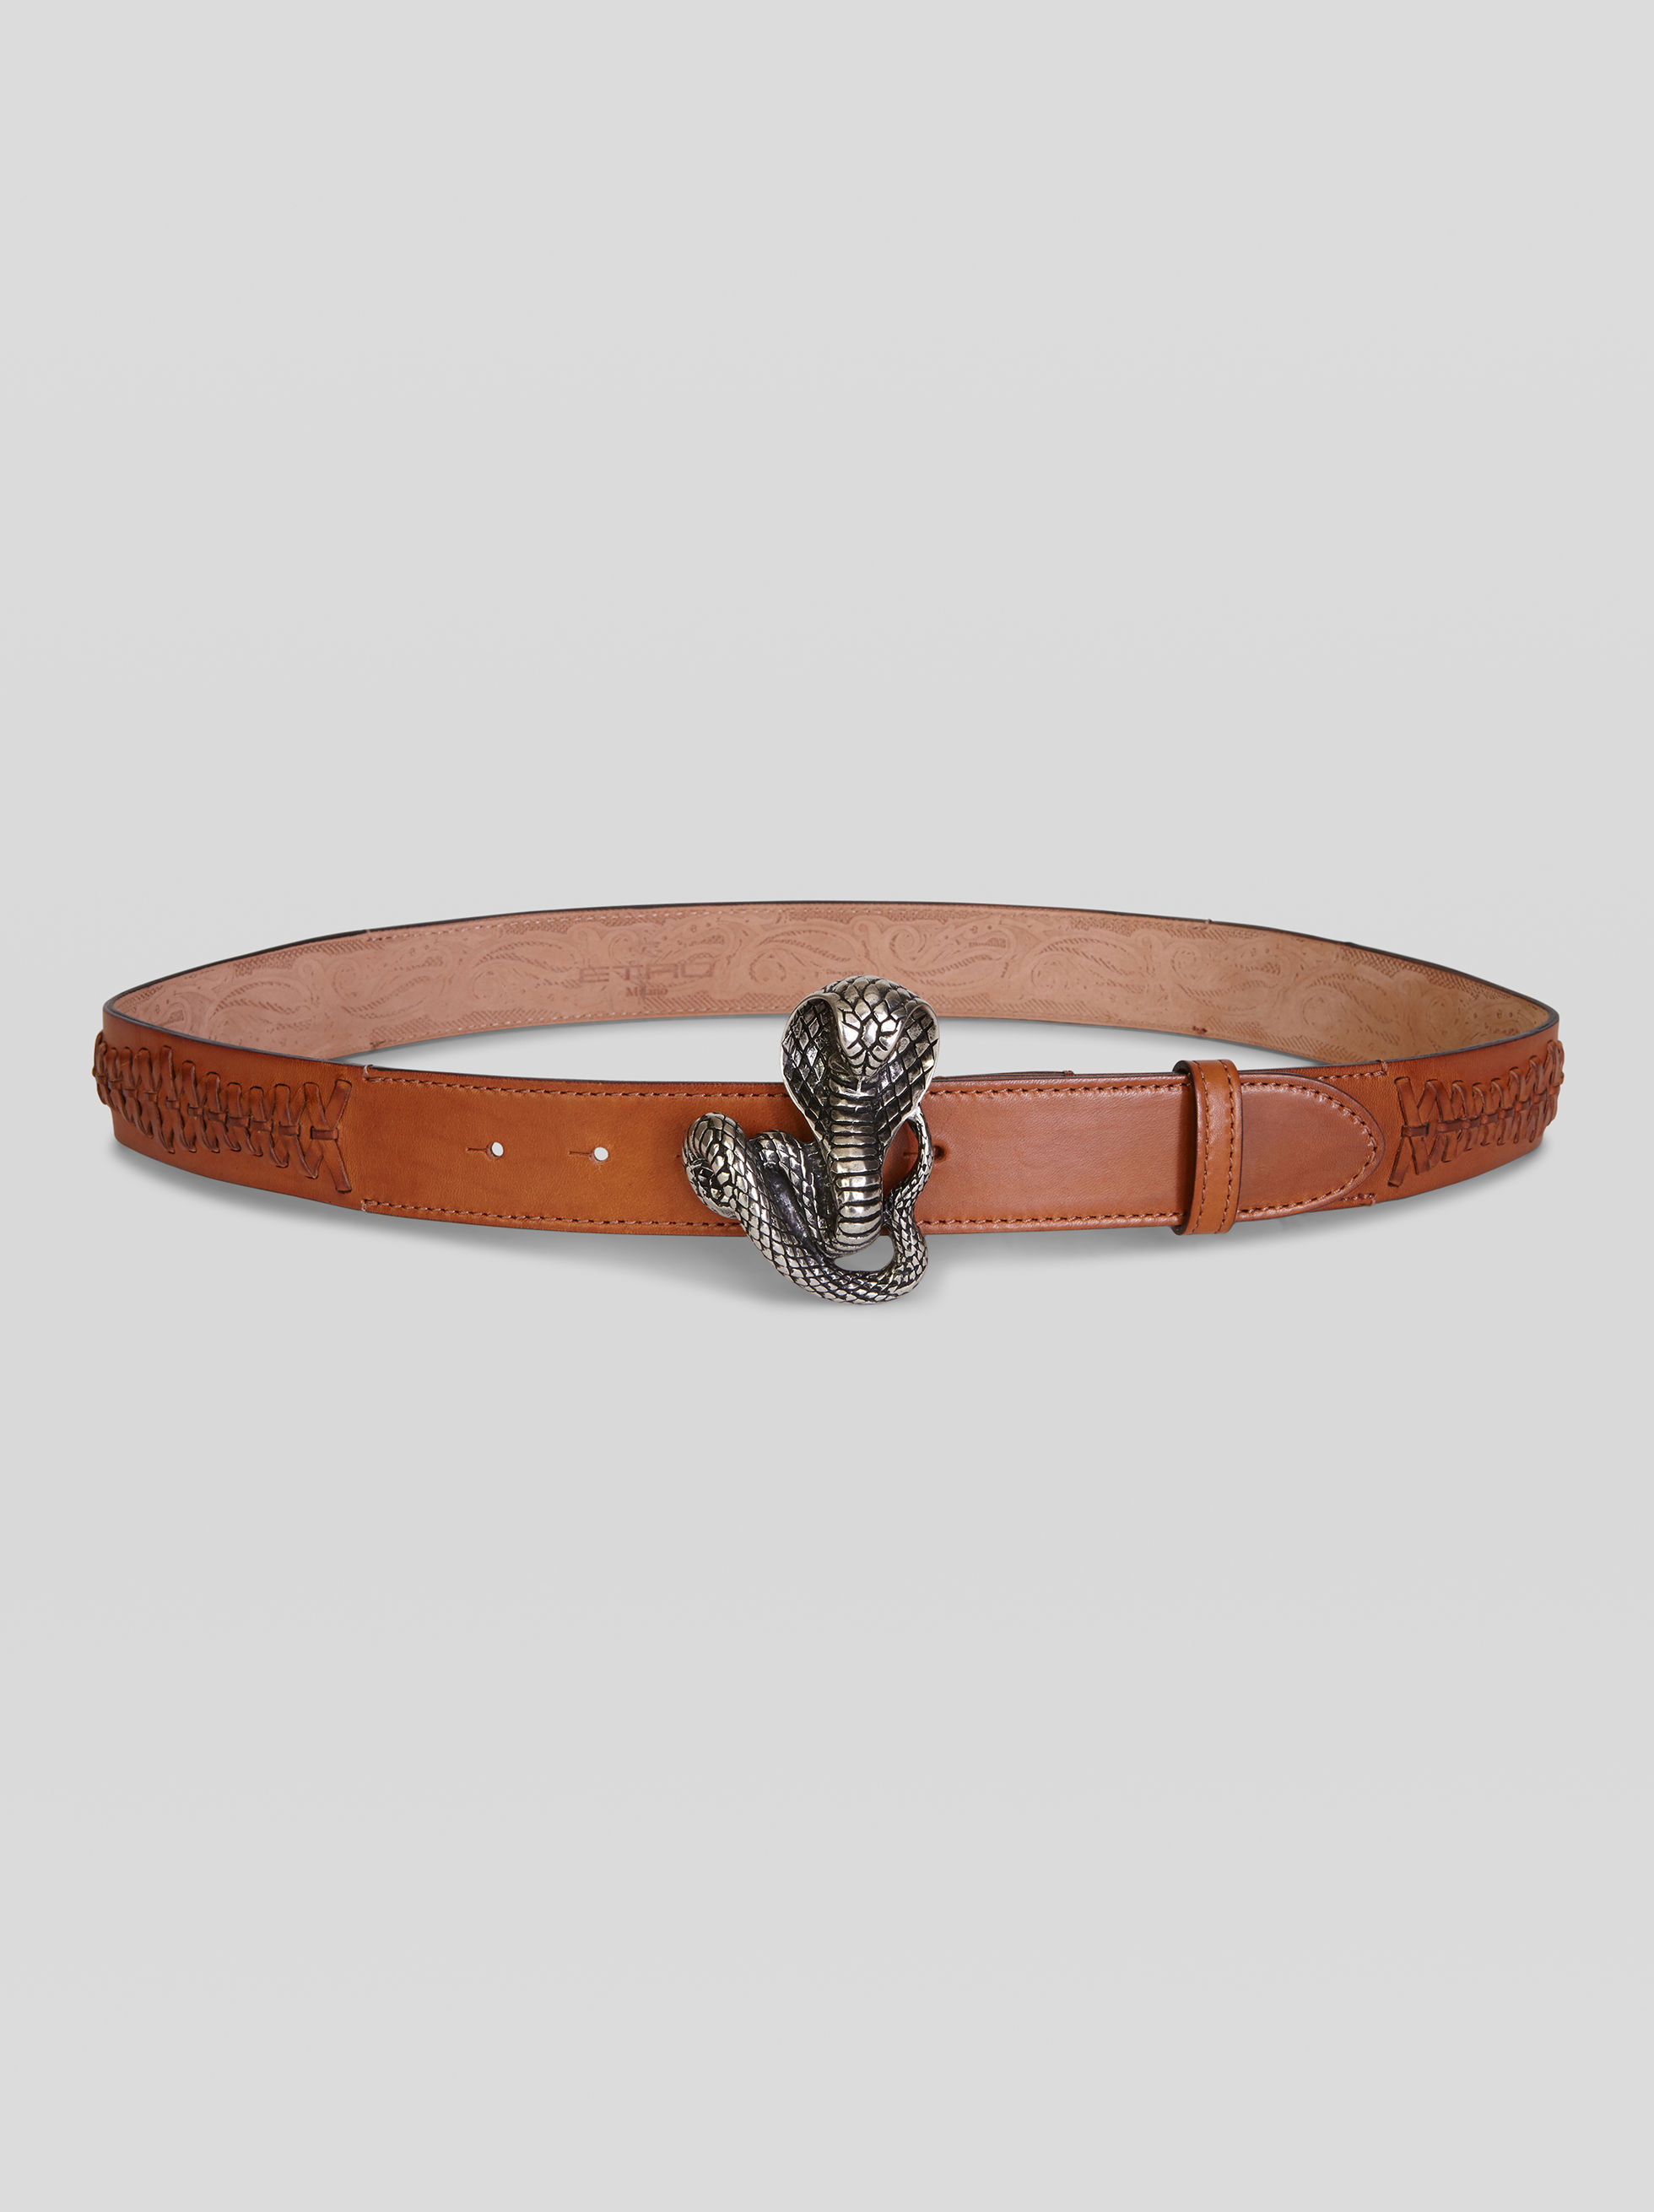 Etro LEATHER BELT WITH SNAKE BUCKLE